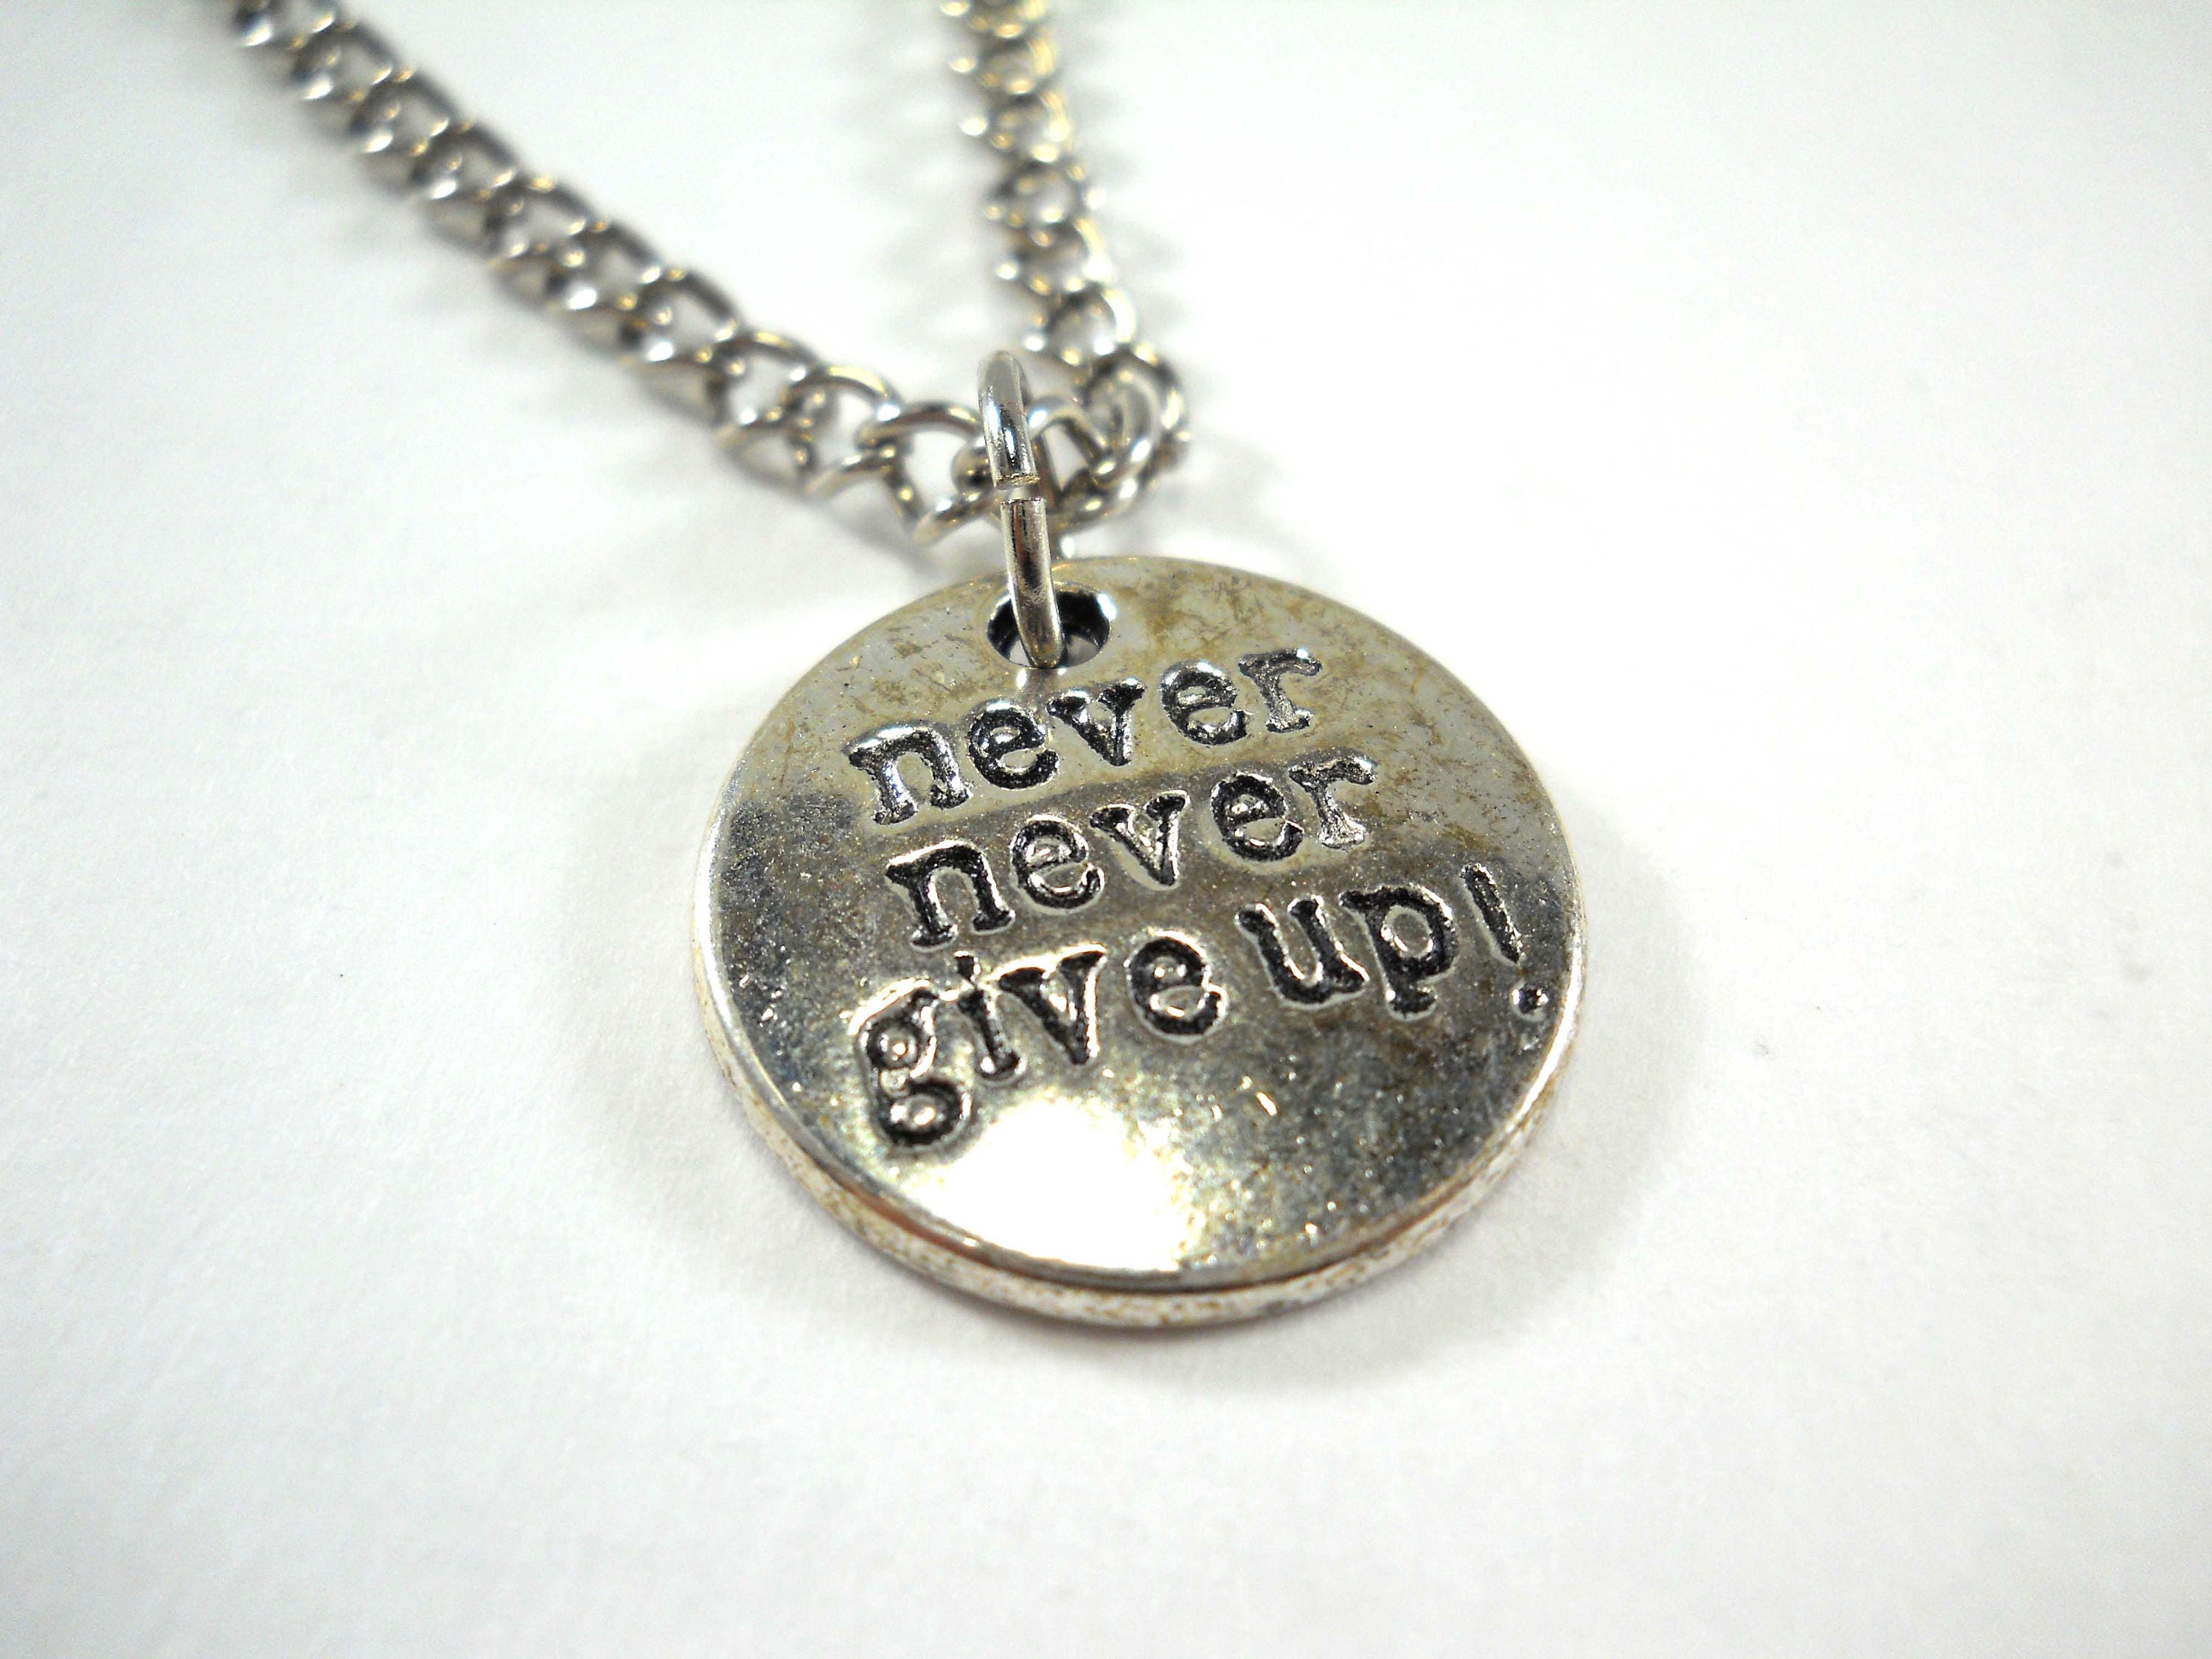 Never never give up charm pendant necklace antique silver tone gallery photo gallery photo gallery photo aloadofball Images